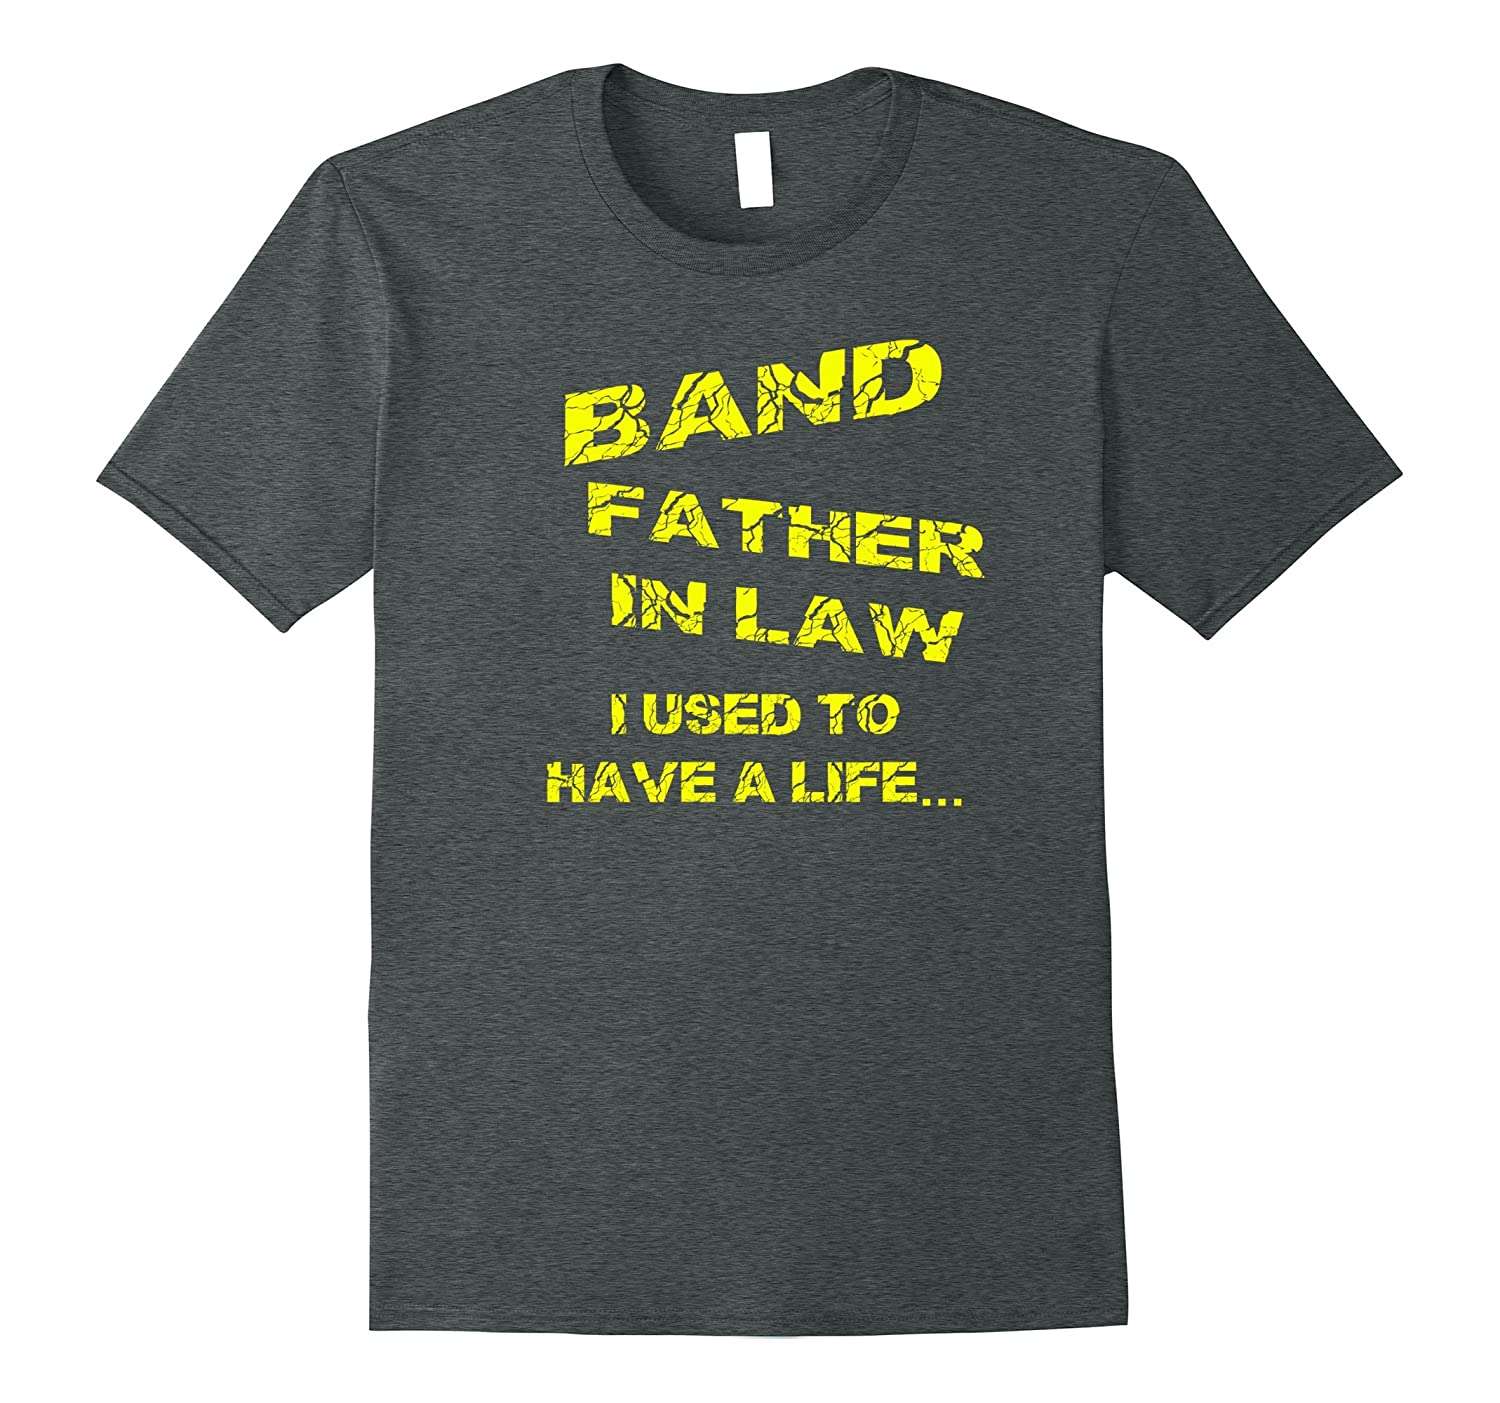 BAND FATHER-IN-LAW IUSED TO HAVE A LIFE